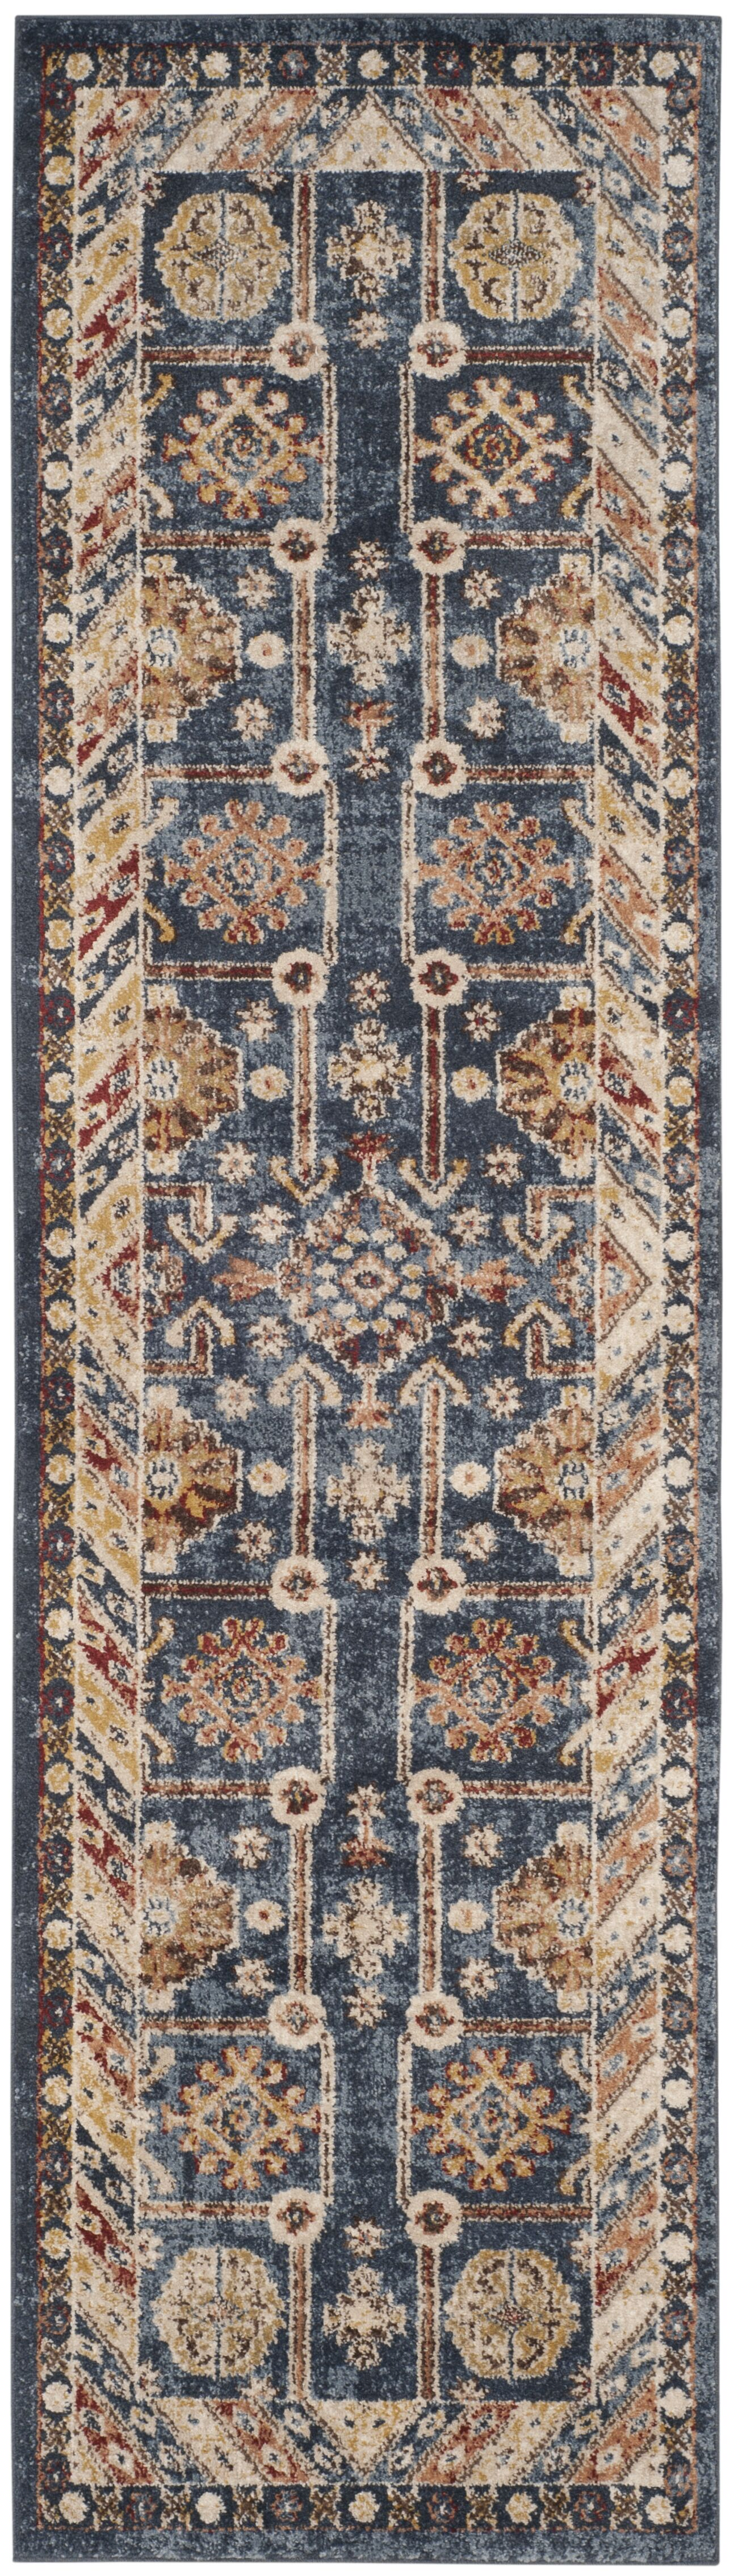 Area Rugs Flurries Decorative Holiday